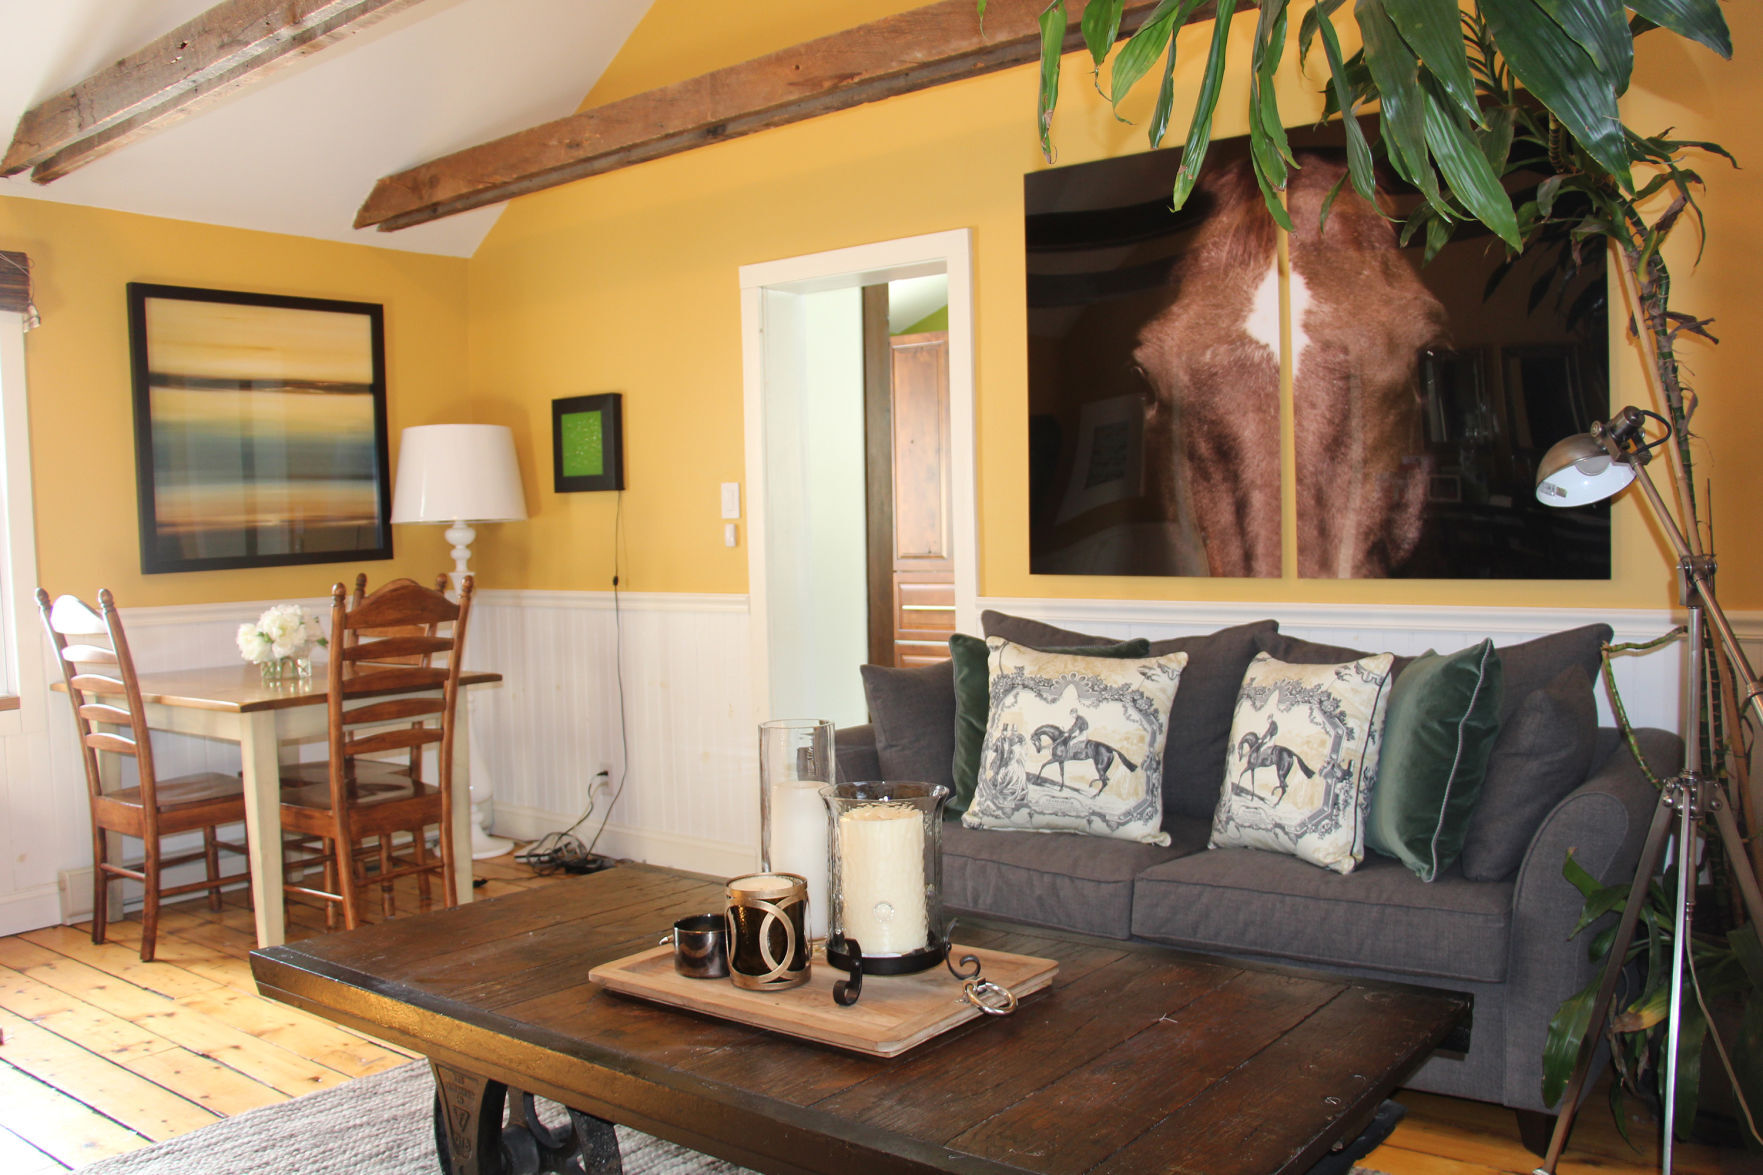 Design Recipes How To Maximize Furniture Placement In Small Spaces Siouxland Homes Siouxcityjournal Com